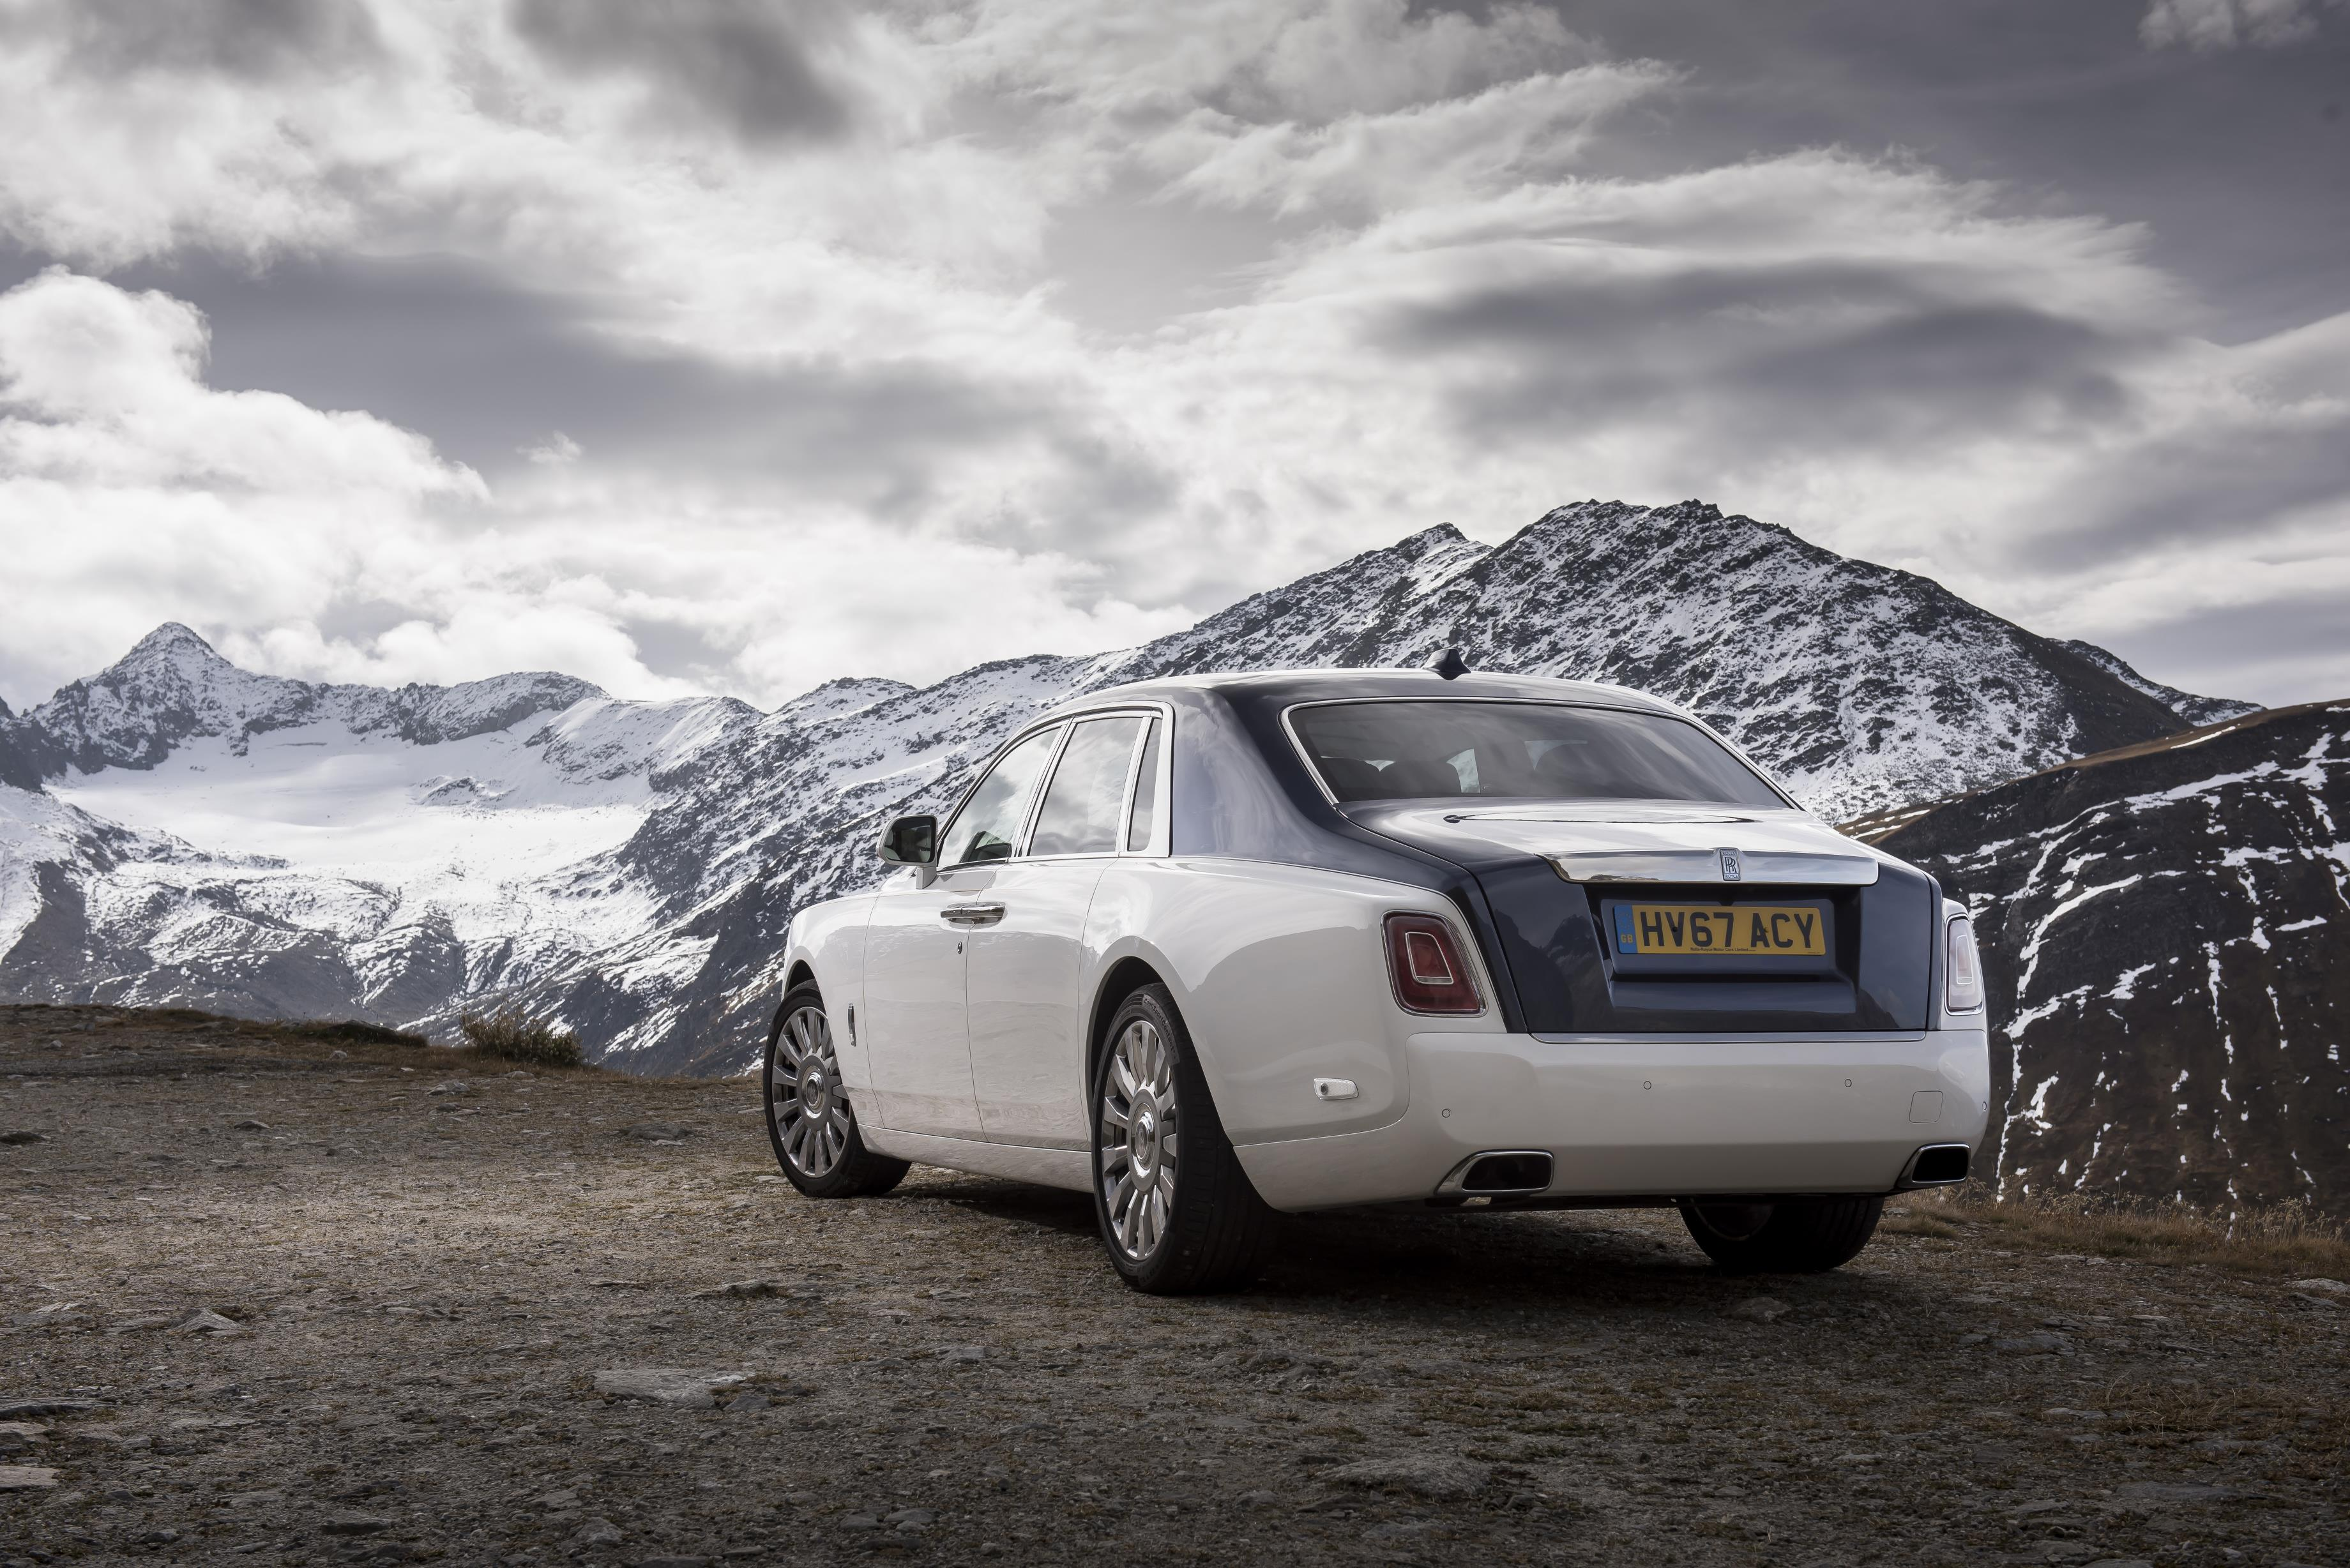 Rolls Royce Phantom Wins Award